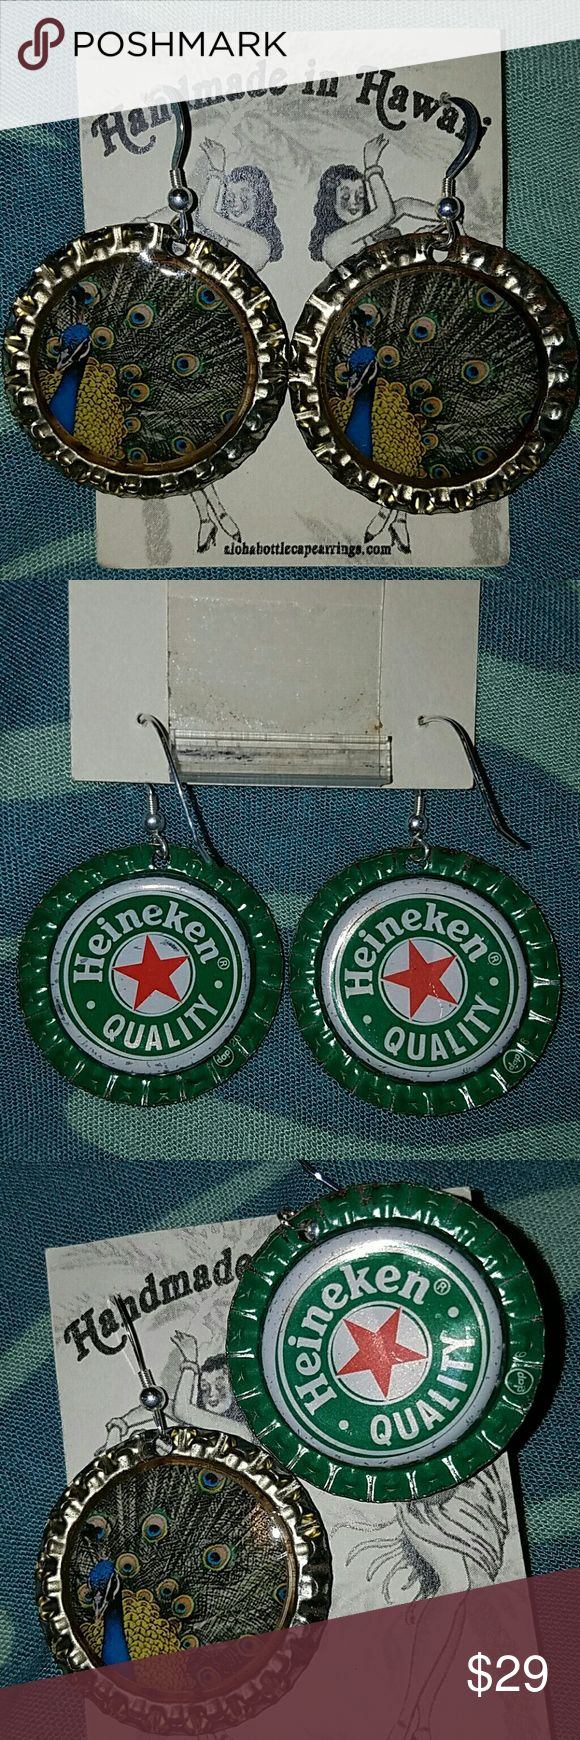 Peacock beer bottle cap earrings aloha Heineken br Brand new reversible Peacock feather earrings made from Heineken Brewing co beer bottle caps. Brand is Aloha bottlecap earrings, handmade in Hawaii on the North Shore on Oahu with high-quality resin out of recycled sterilized real beer bottle caps. Firm on price & not interested in trading. Mahalo Aloha Bottlecap Jewelry Earrings